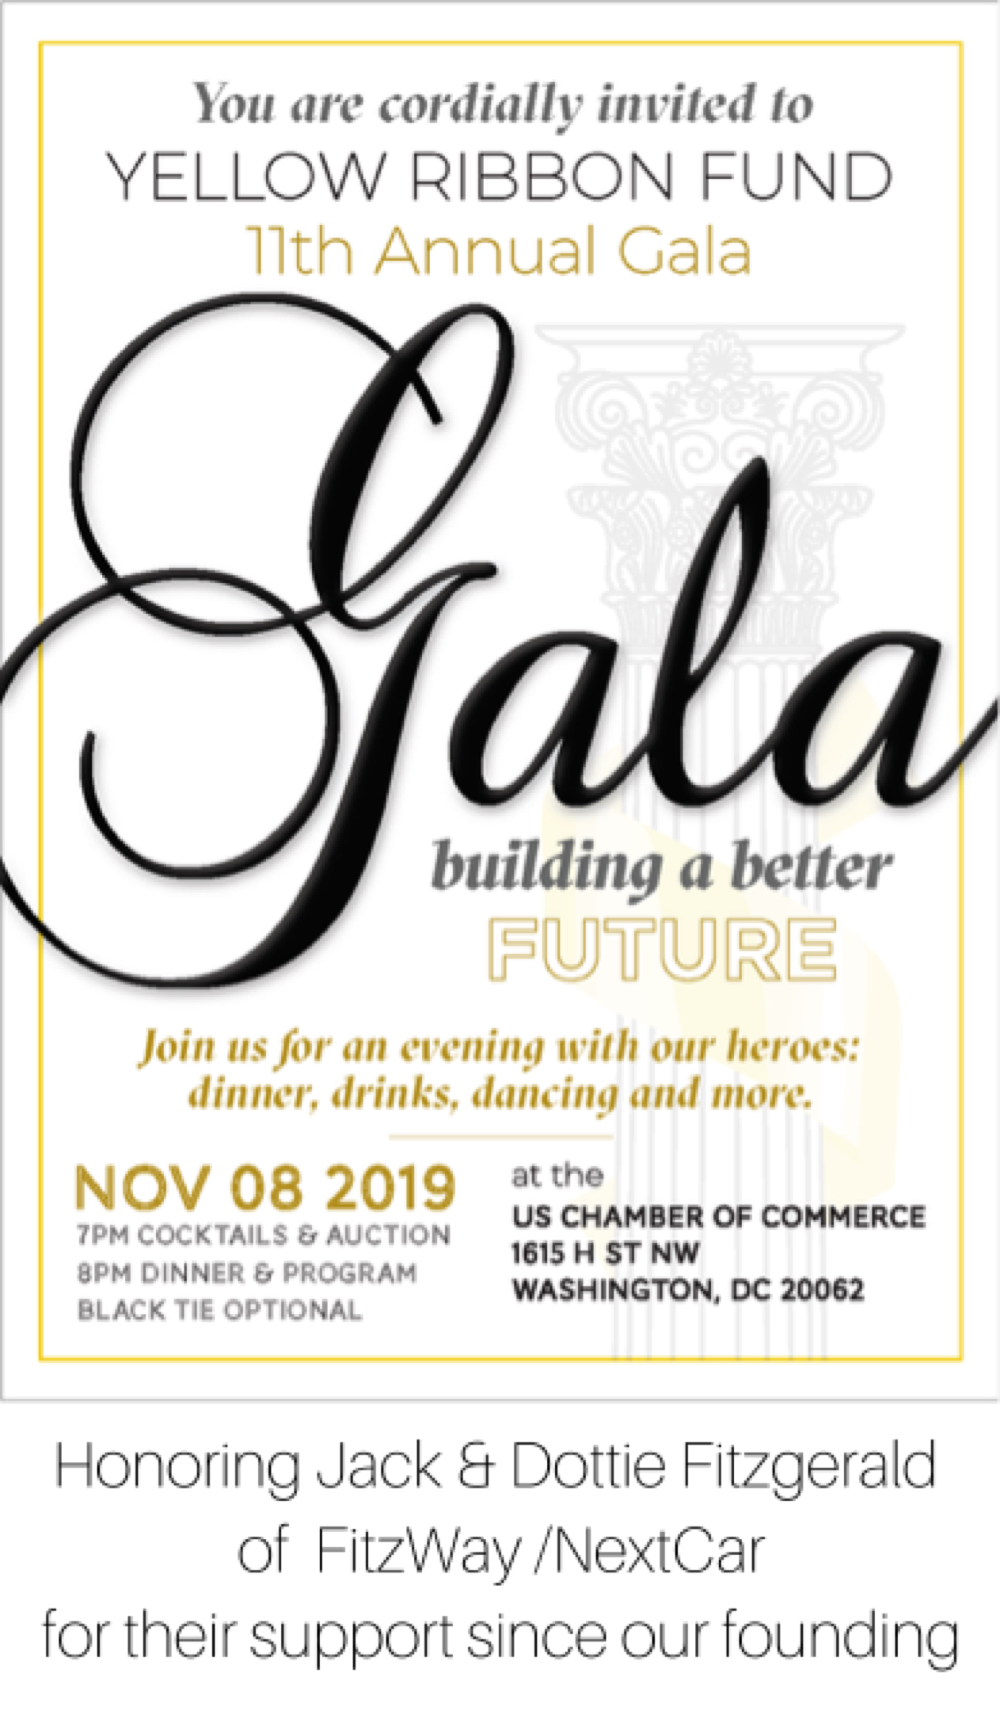 Yellow Ribbon Fund's 11th Annual Gala: Building a Better Future